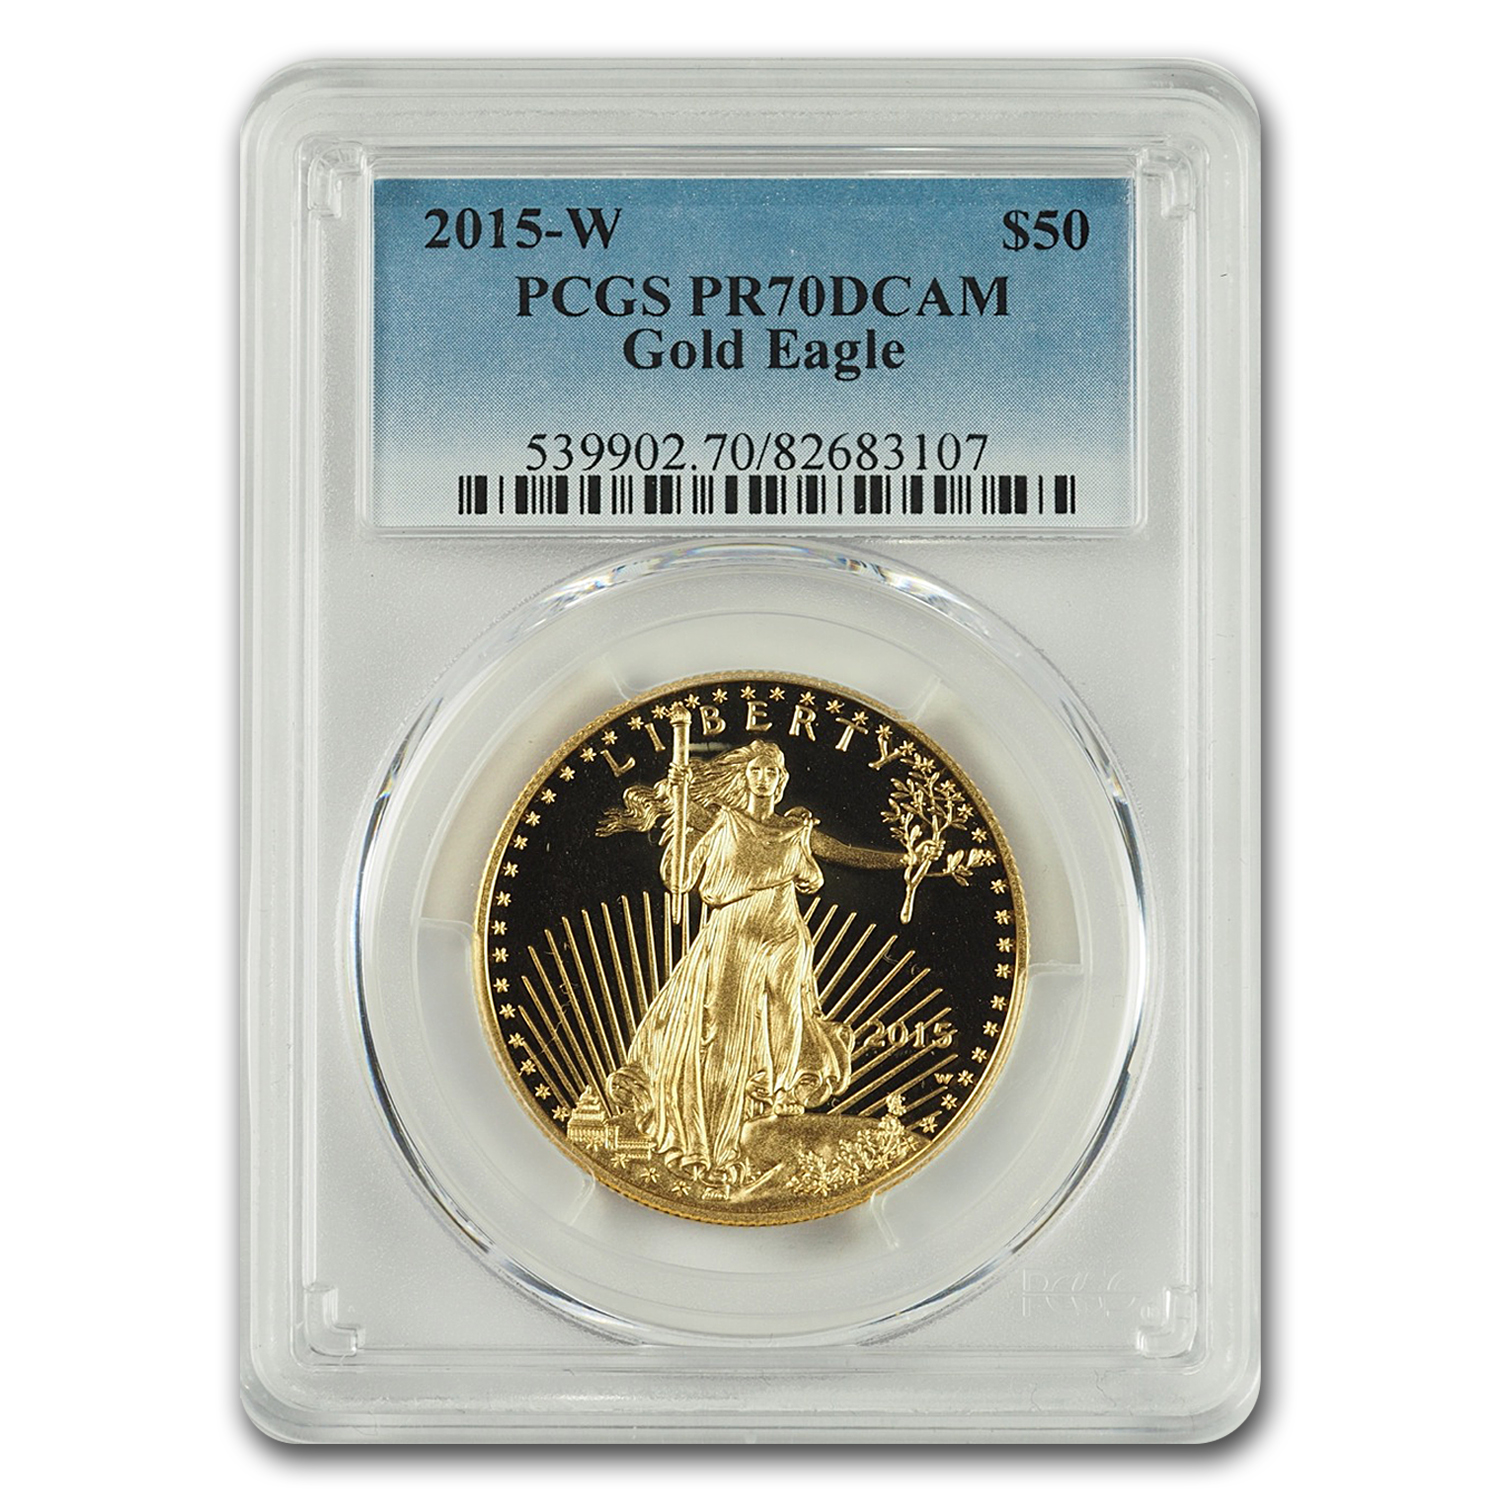 2015-W 1 oz Proof Gold American Eagle PR-70 PCGS